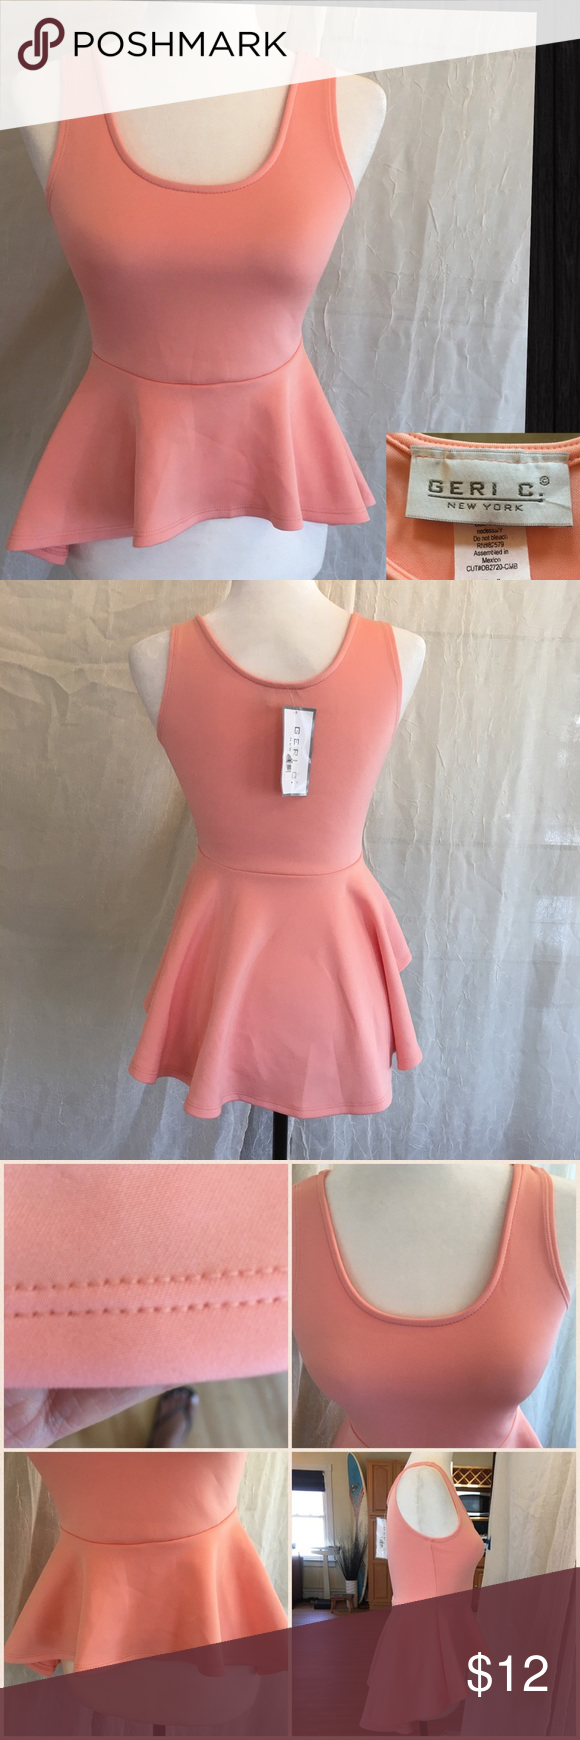 NWT Geri C Peplum Tank Top in Peach Sz Sm Flattering top with U shaped neckline that hugs just right. Bottom is enhanced by the Hi-Lo flouncy peplum with double stitching. This top is well made and simple but flattering. 90% polyester 10% spandex. NWT Geri C New York Tops Tank Tops